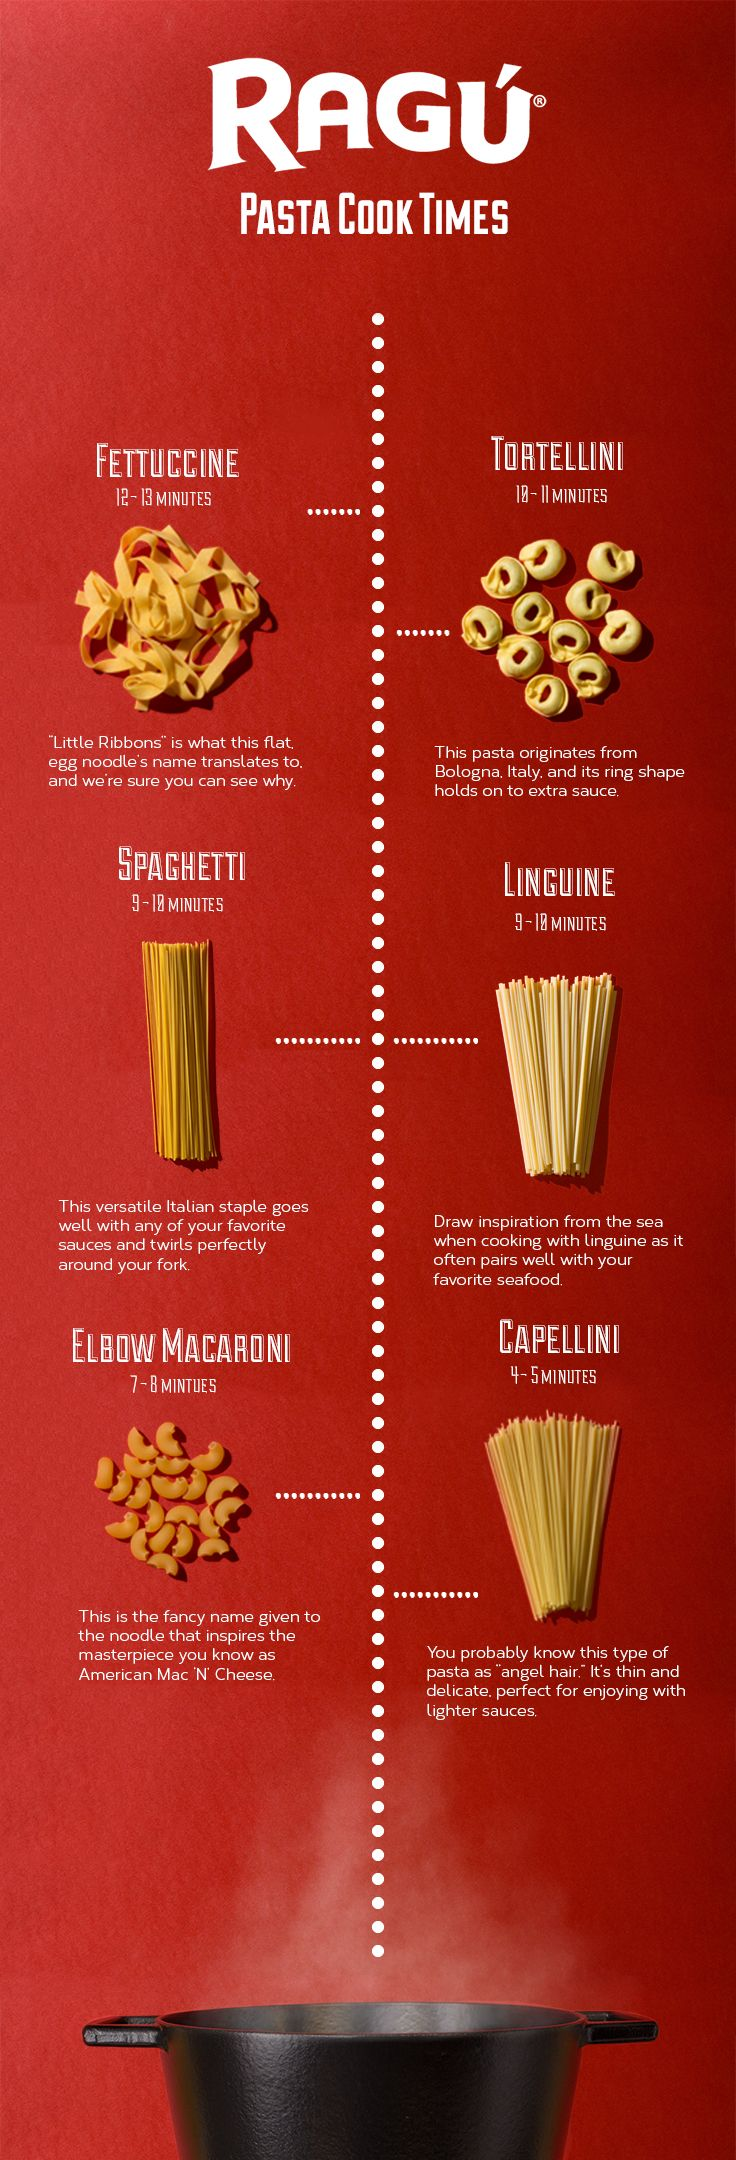 Did you know you should never mix pasta types in the same pot? Since all pastas don't necessarily have cooking times in common, this could affect the outcome of an otherwise perfectly prepared meal. Read package directions carefully to get the best results. Want to know what every noodle does have in common? They all taste better with RAGÚ pasta sauce.